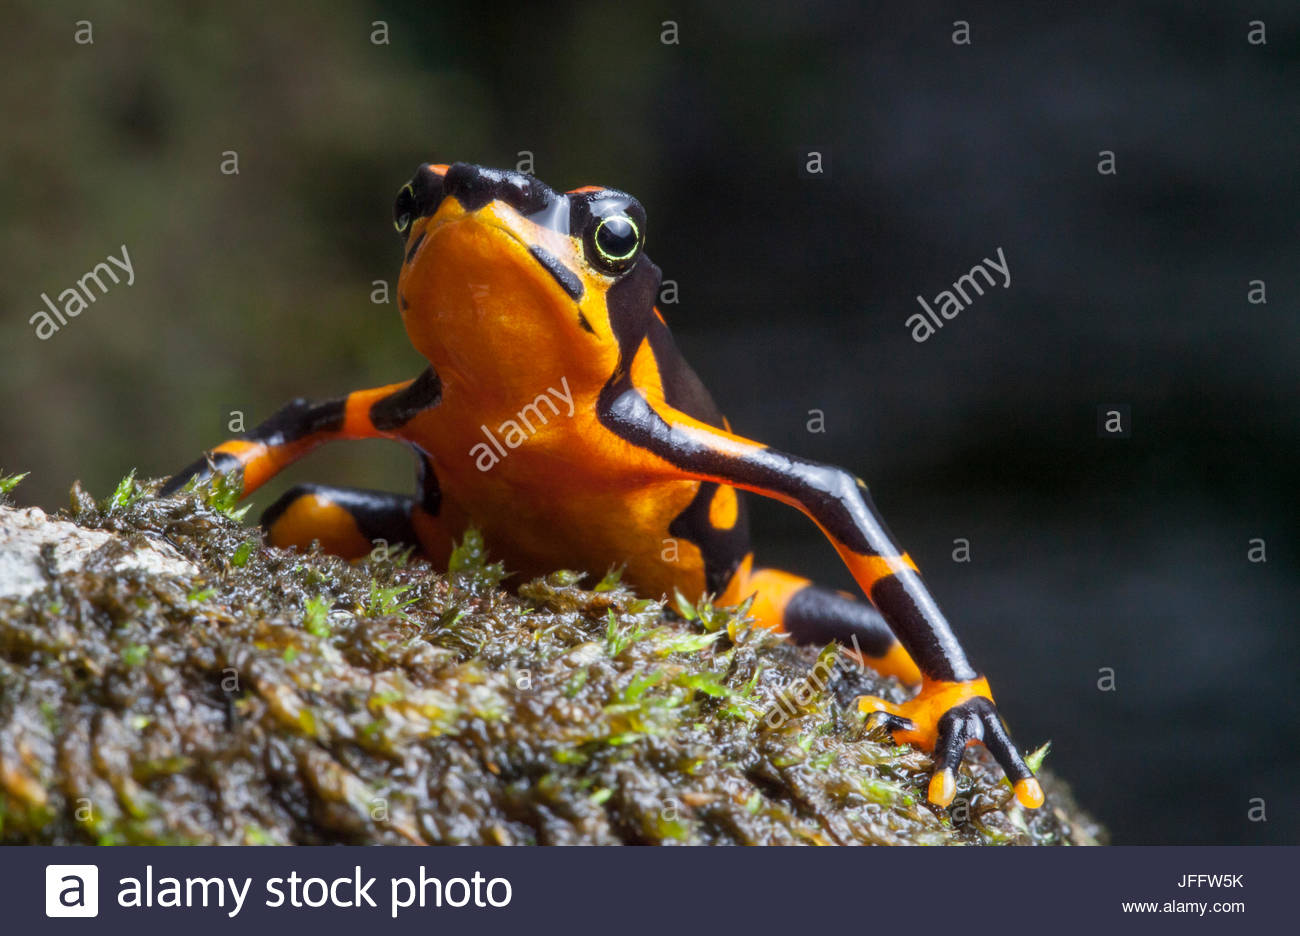 Portrait of a variable harlequin frog, Atelopus varius, a critically endangered species. - Stock Image